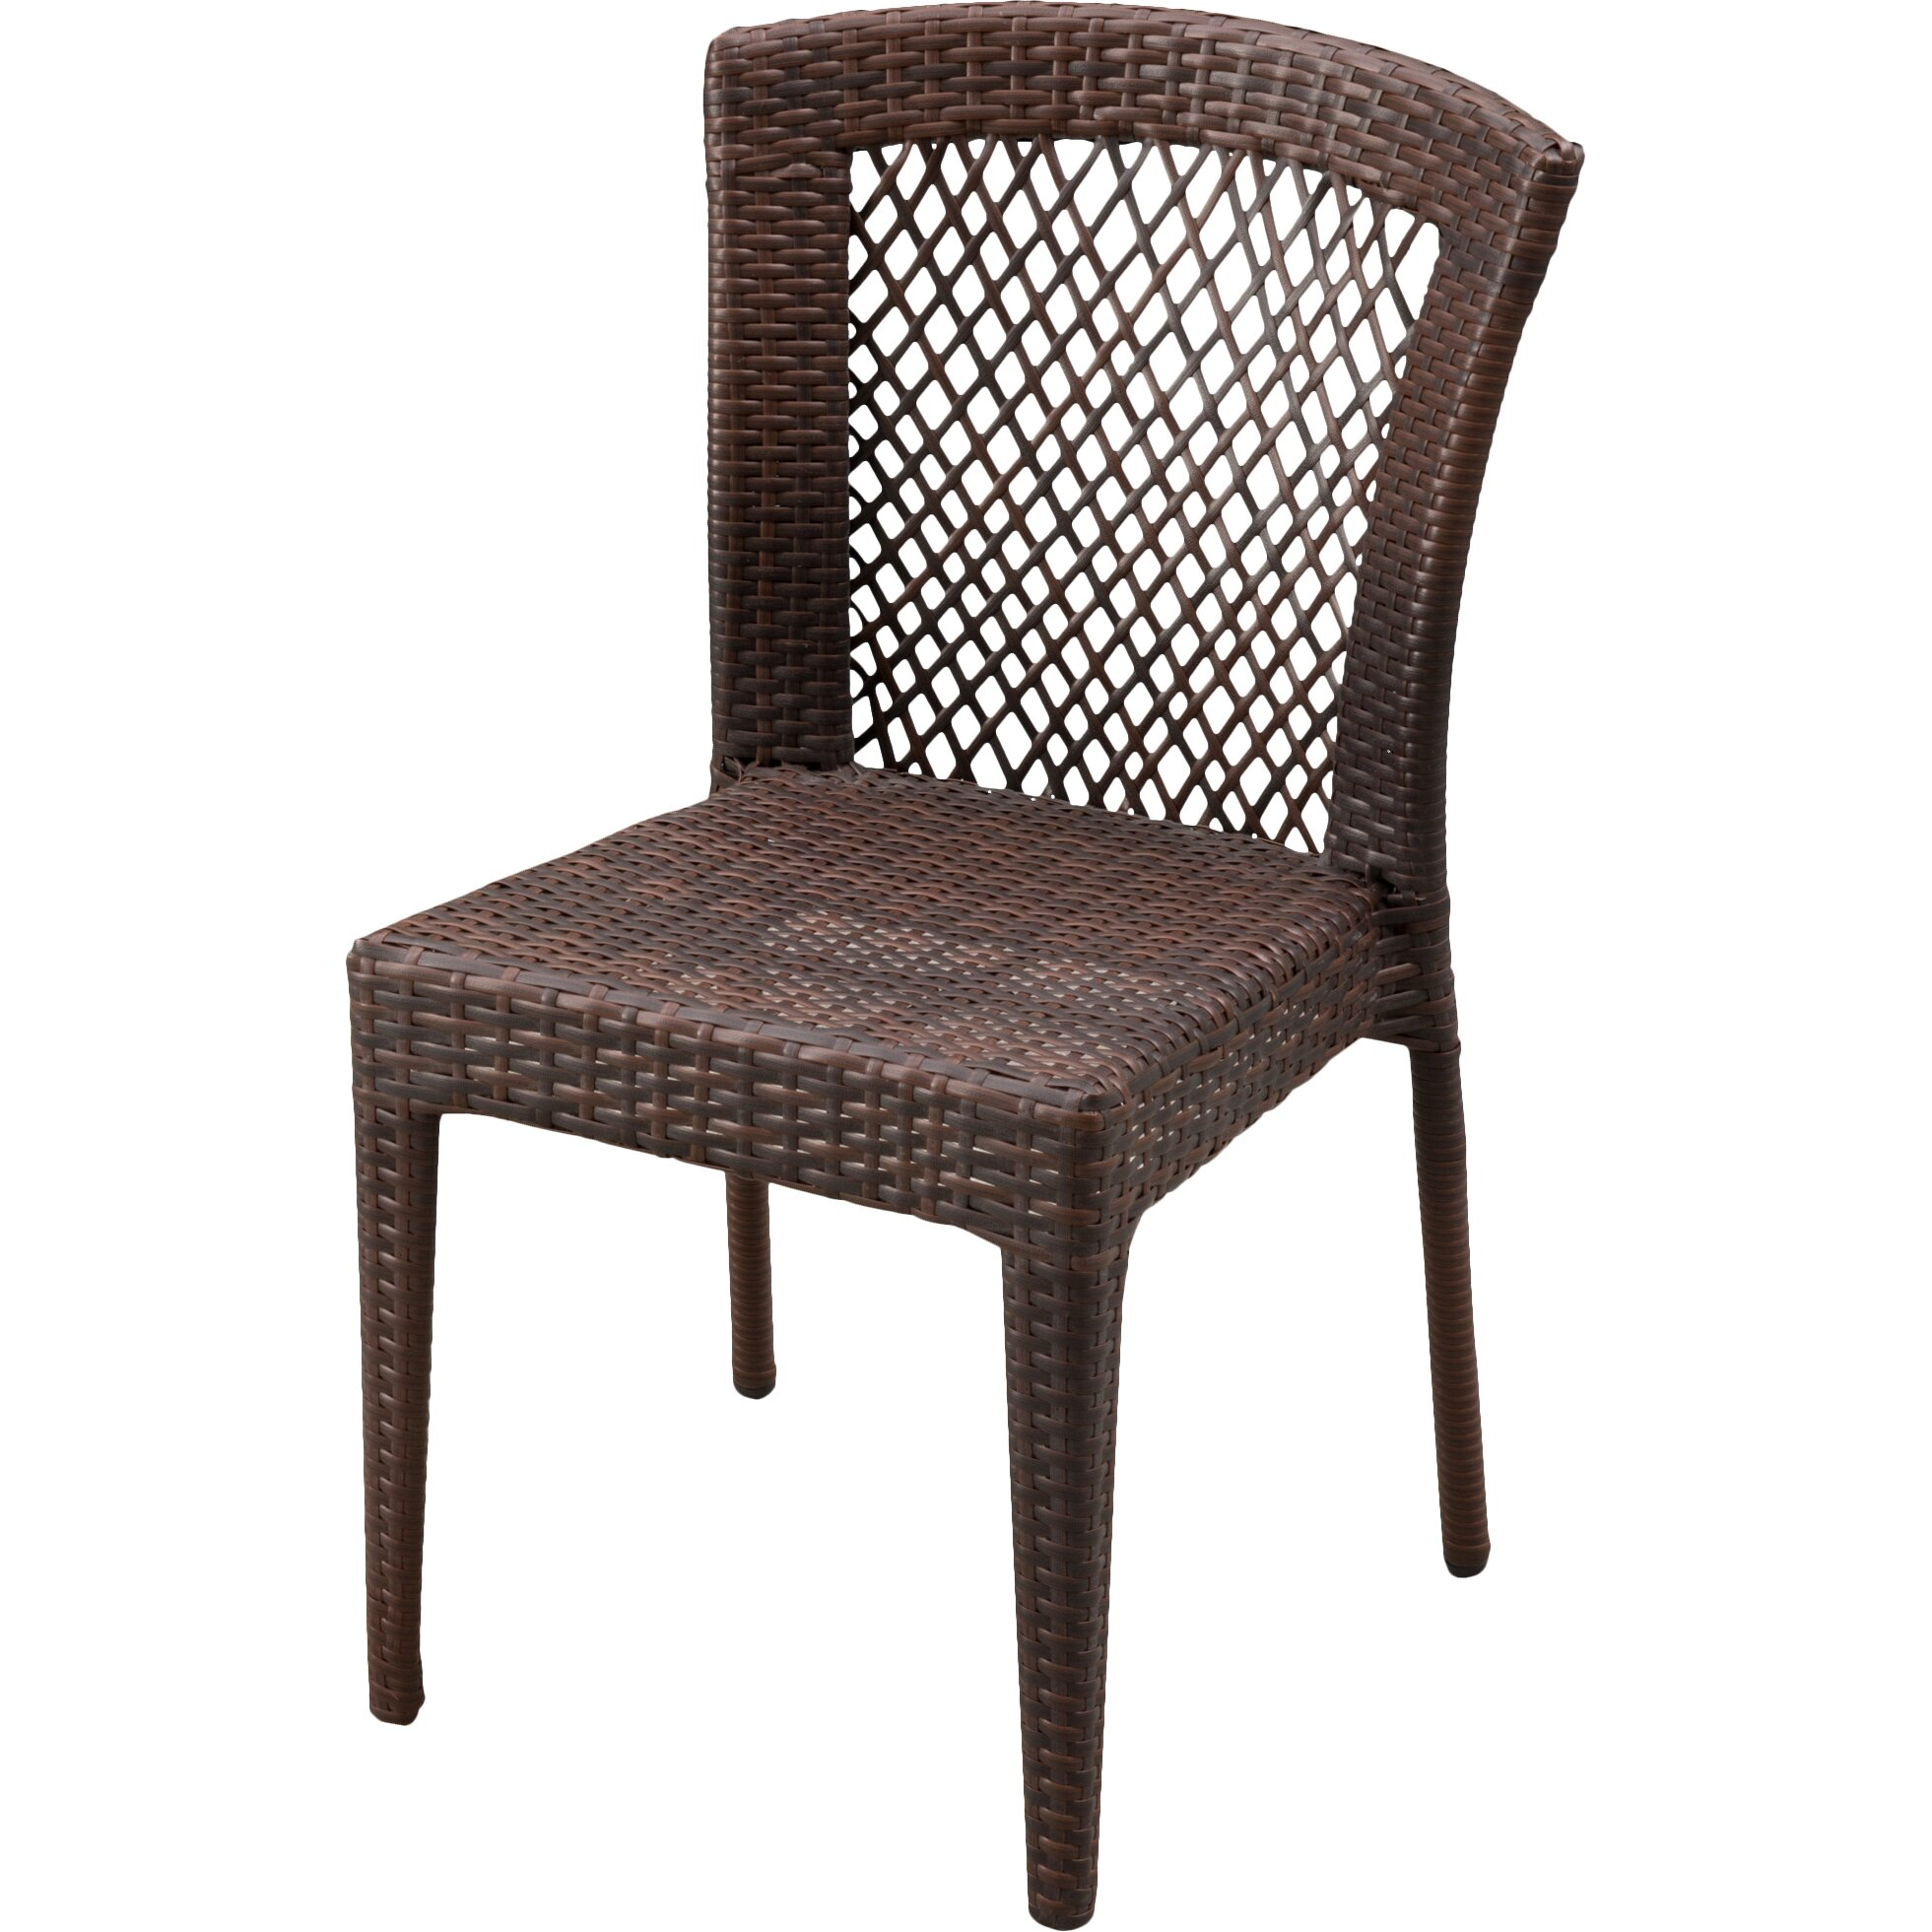 Breakwater bay dawson outdoor wicker chair reviews wayfair for Outdoor wicker furniture